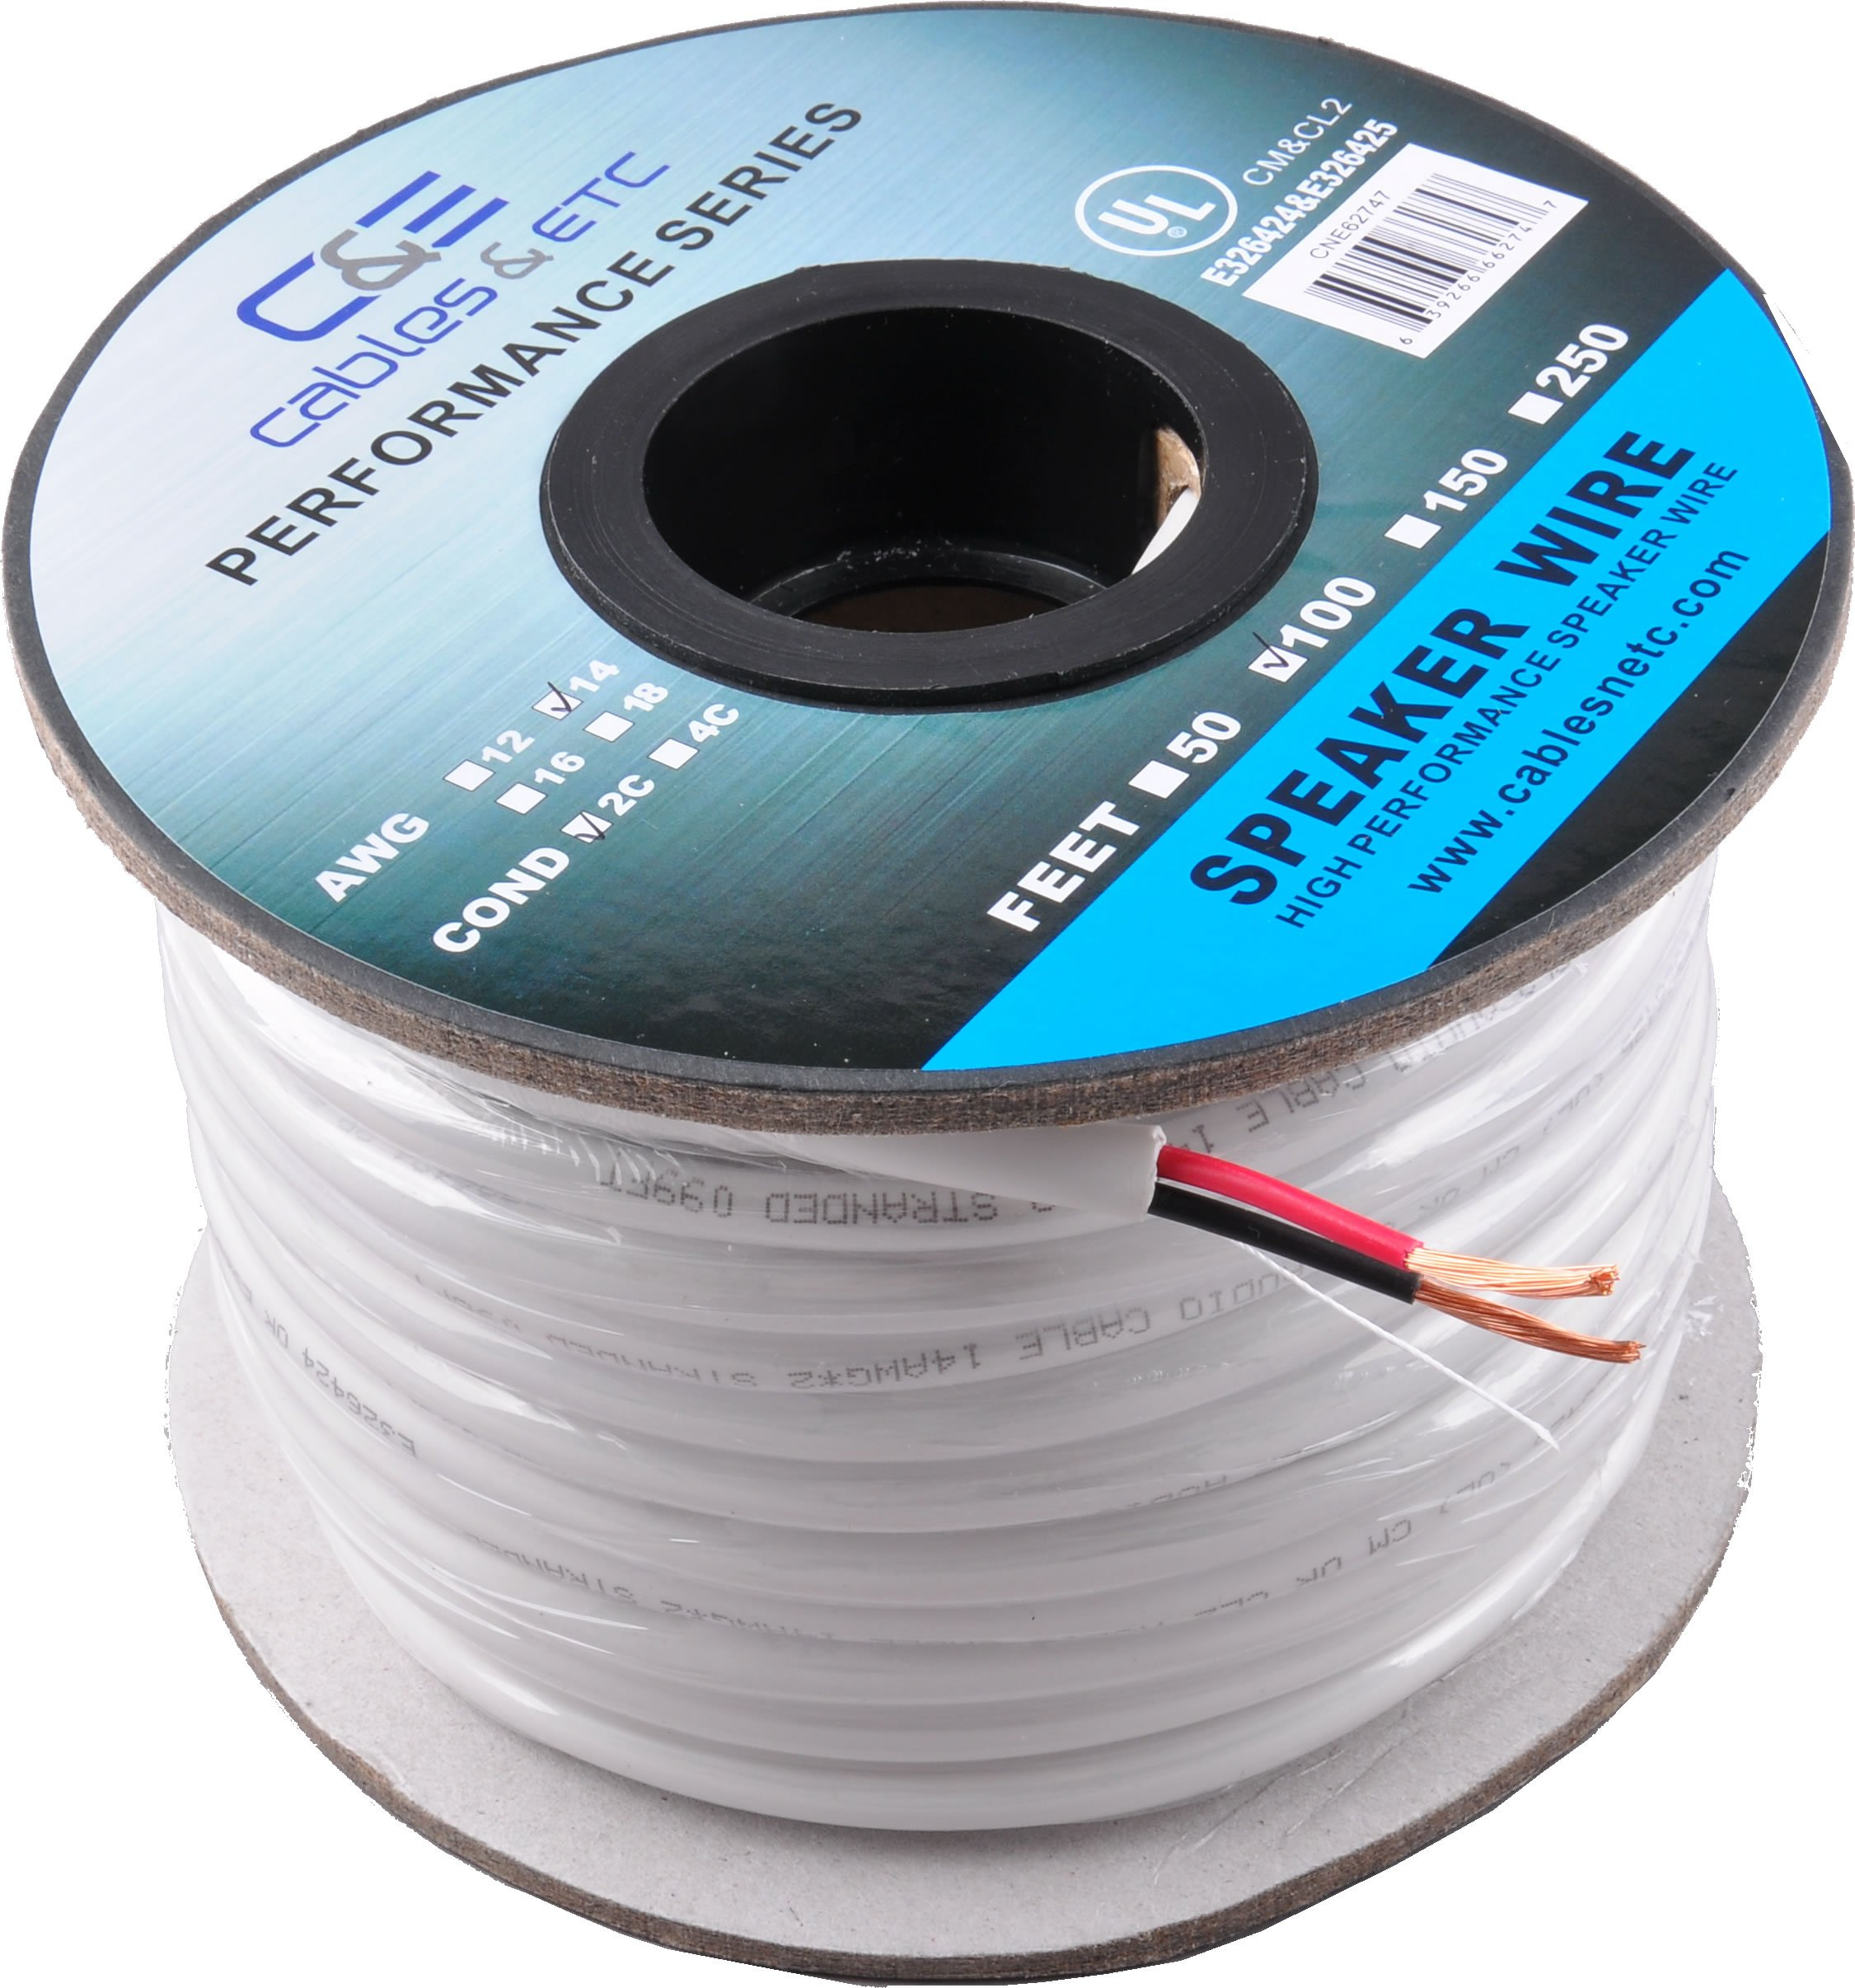 14AWG Speaker Wire CL2 In Wall Rated Oxygen Free Bare Copper 100 Feet (30.48 Meters) 99.9% Oxygen Free Copper (OFC) 2 Conductor Loud Speaker Wire Cable 100ft (30.48M) by C&E